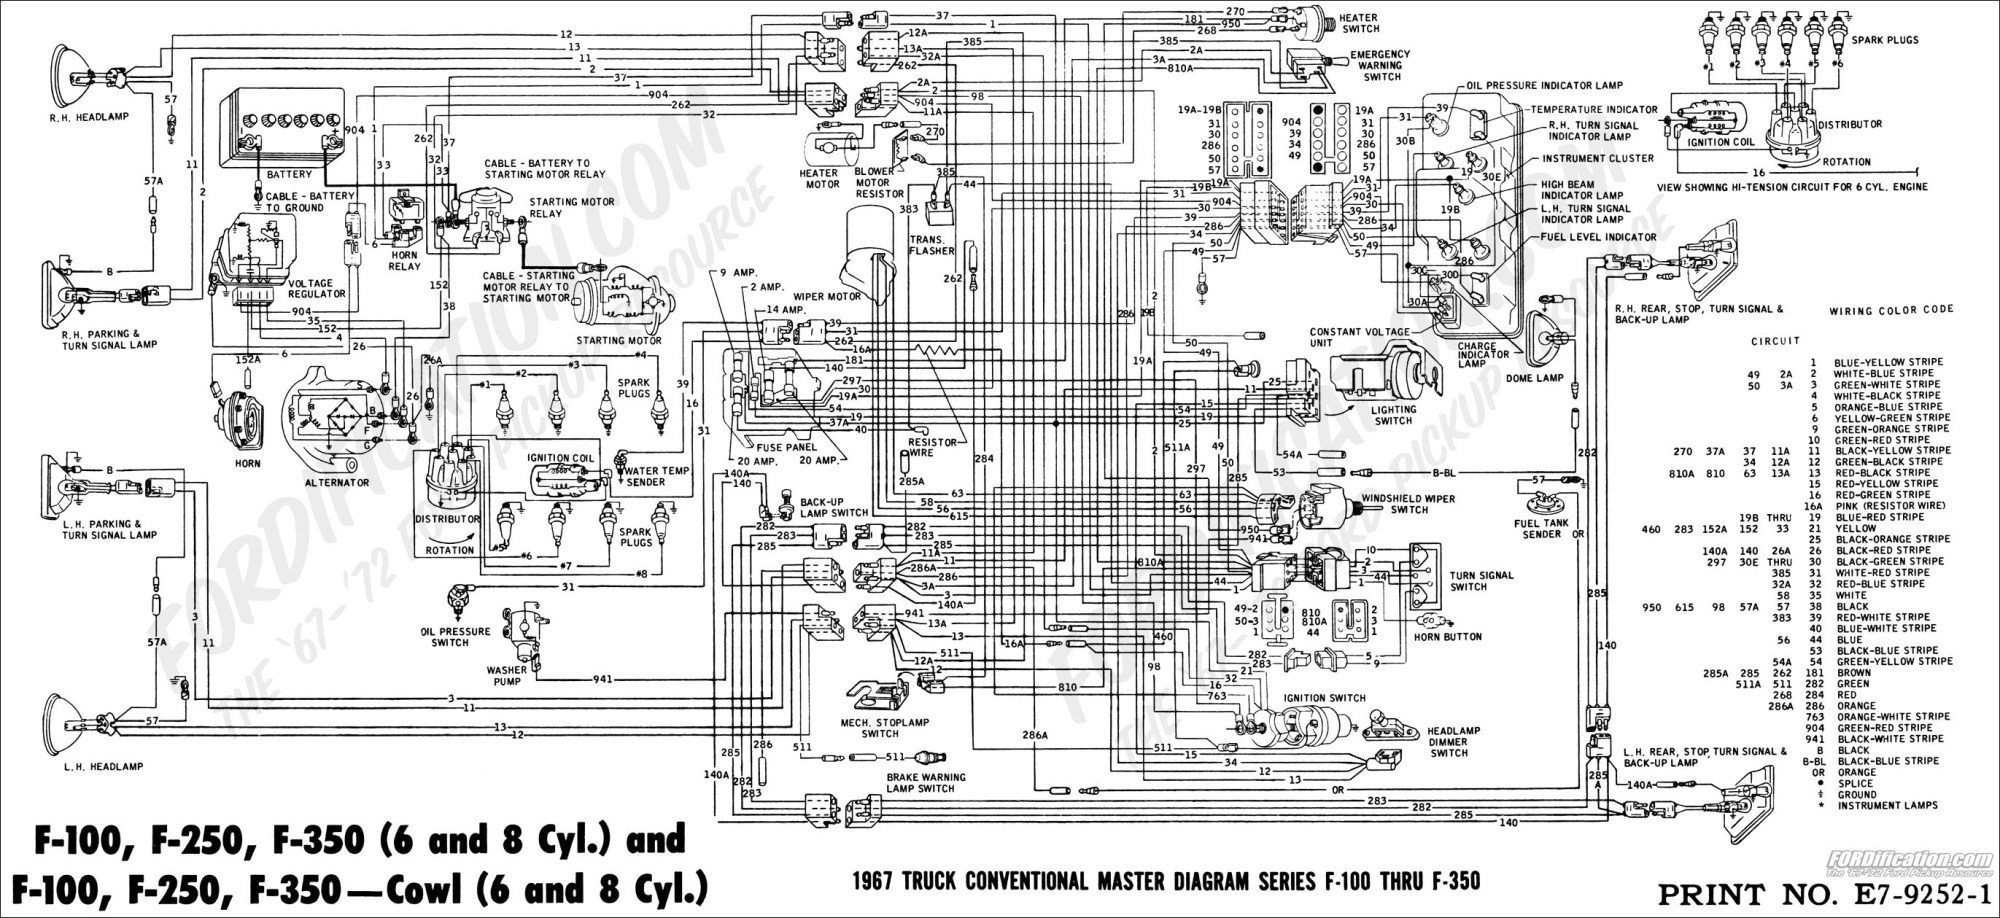 hight resolution of 07 f150 wiring diagram wiring diagram blog 2007 ford f150 wiring diagram 07 f150 wiring diagram